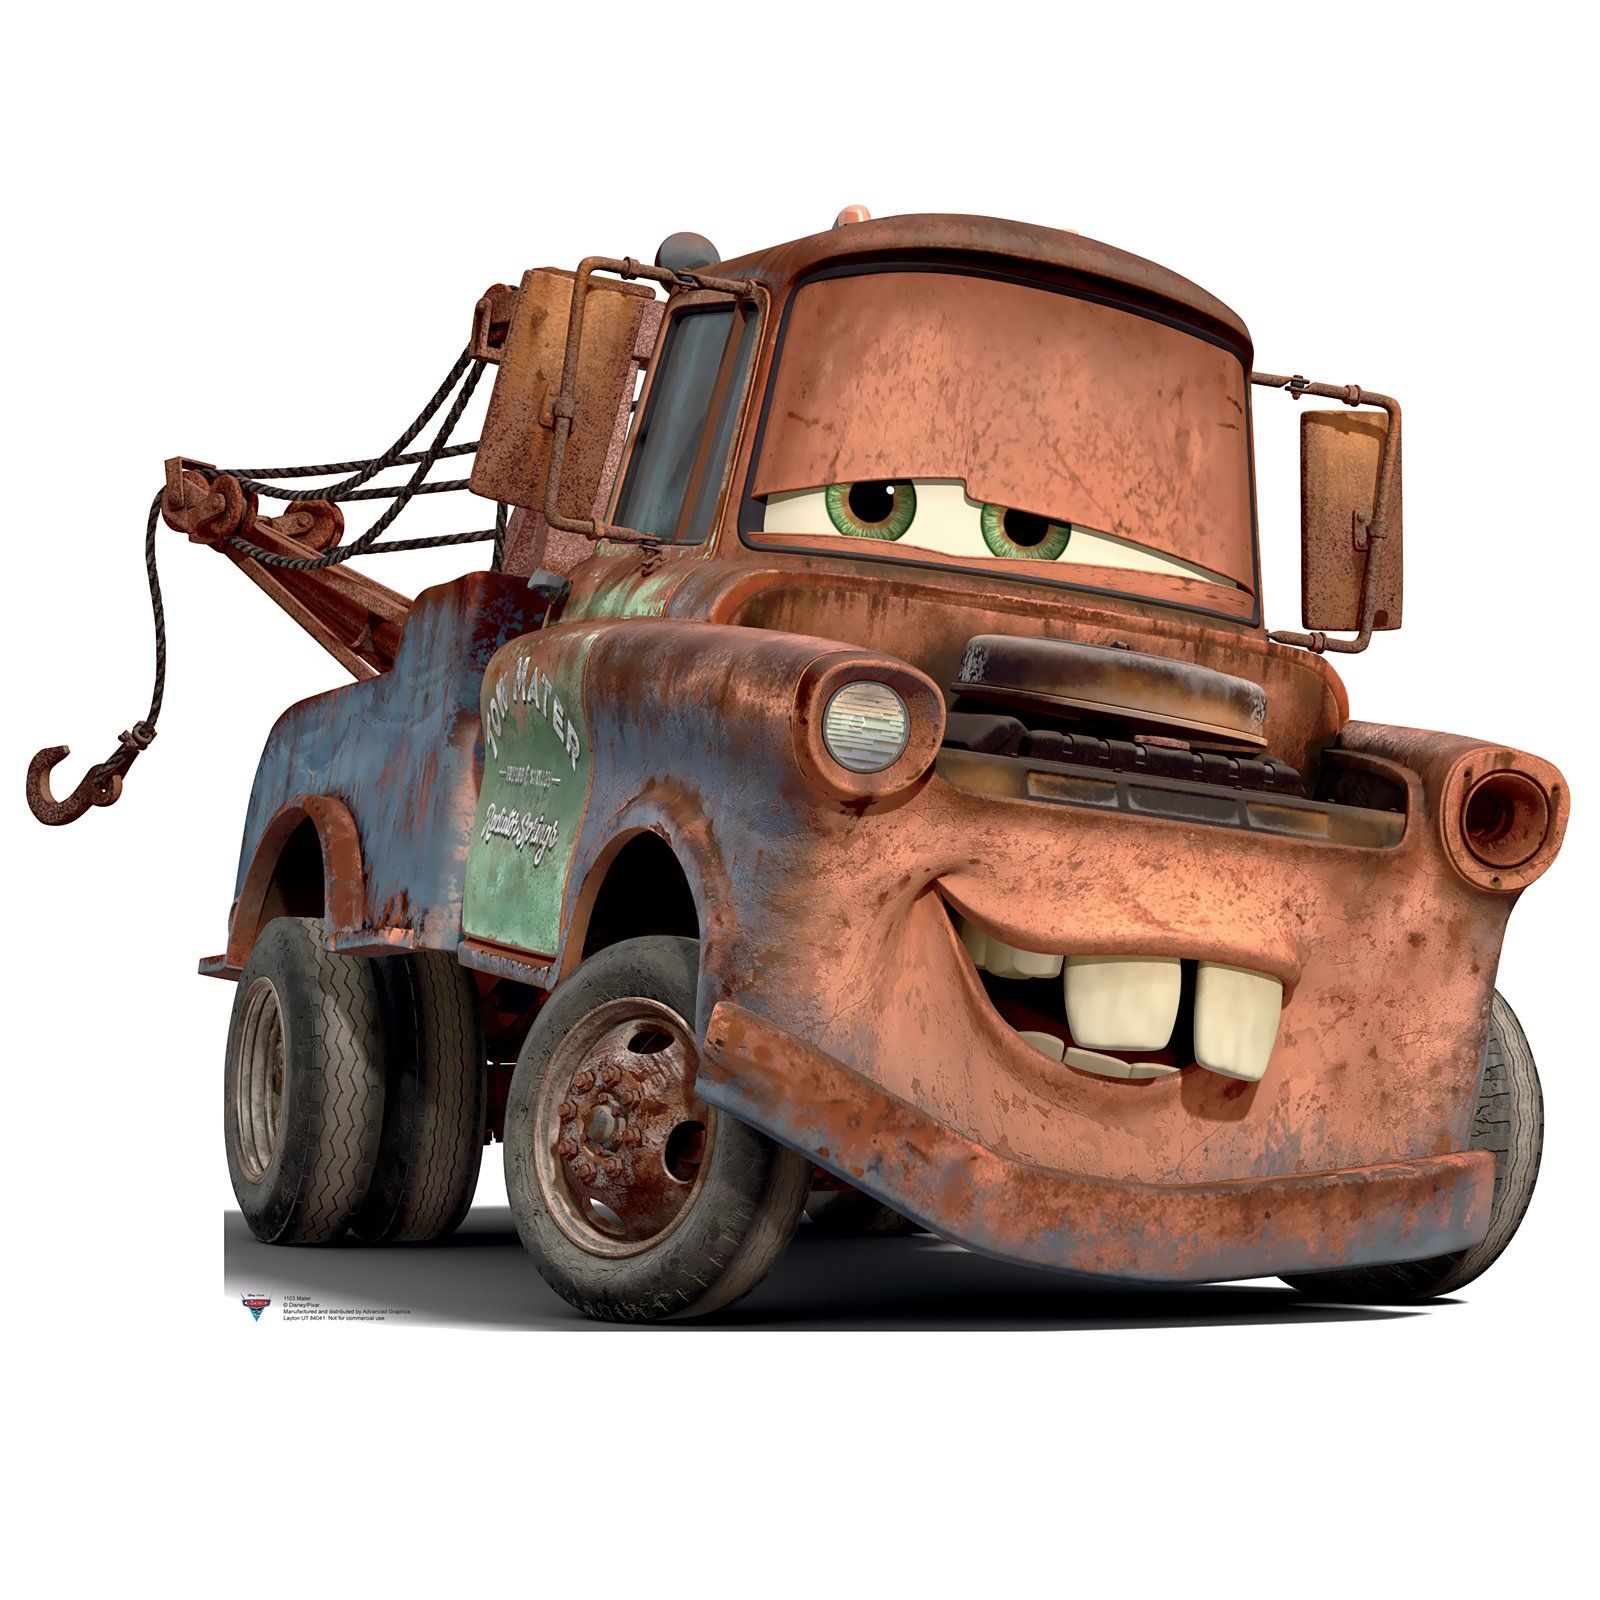 1600x1600 How To Draw Tow Mater From Disney Cars Movie Disney Cars Movie